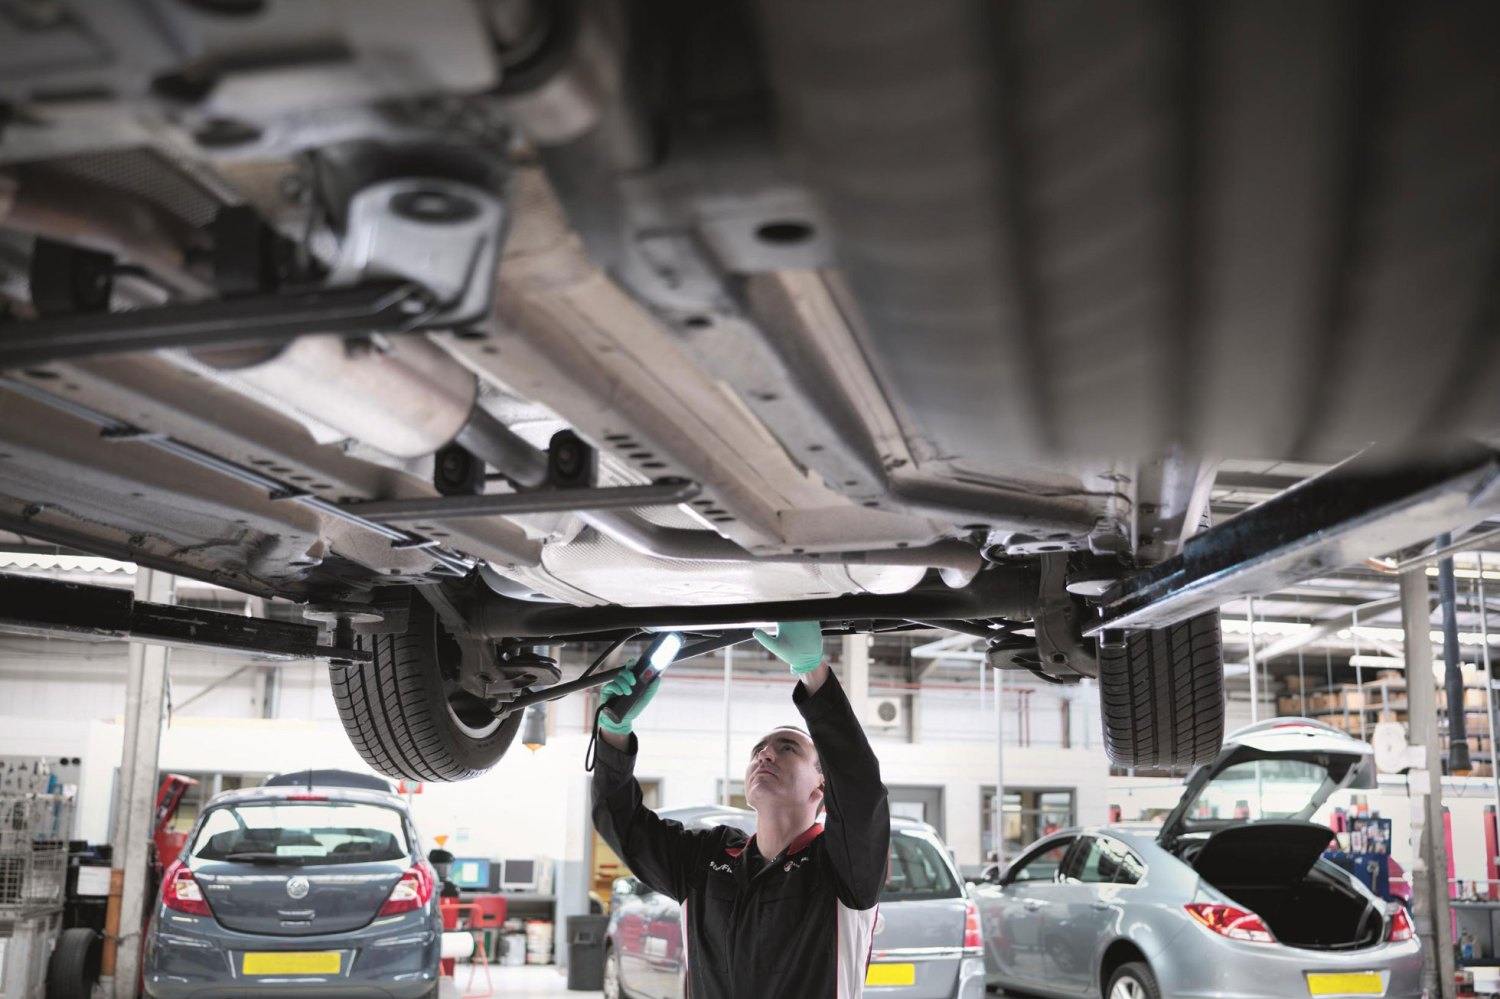 Removing DPF: illegal and costly say experts